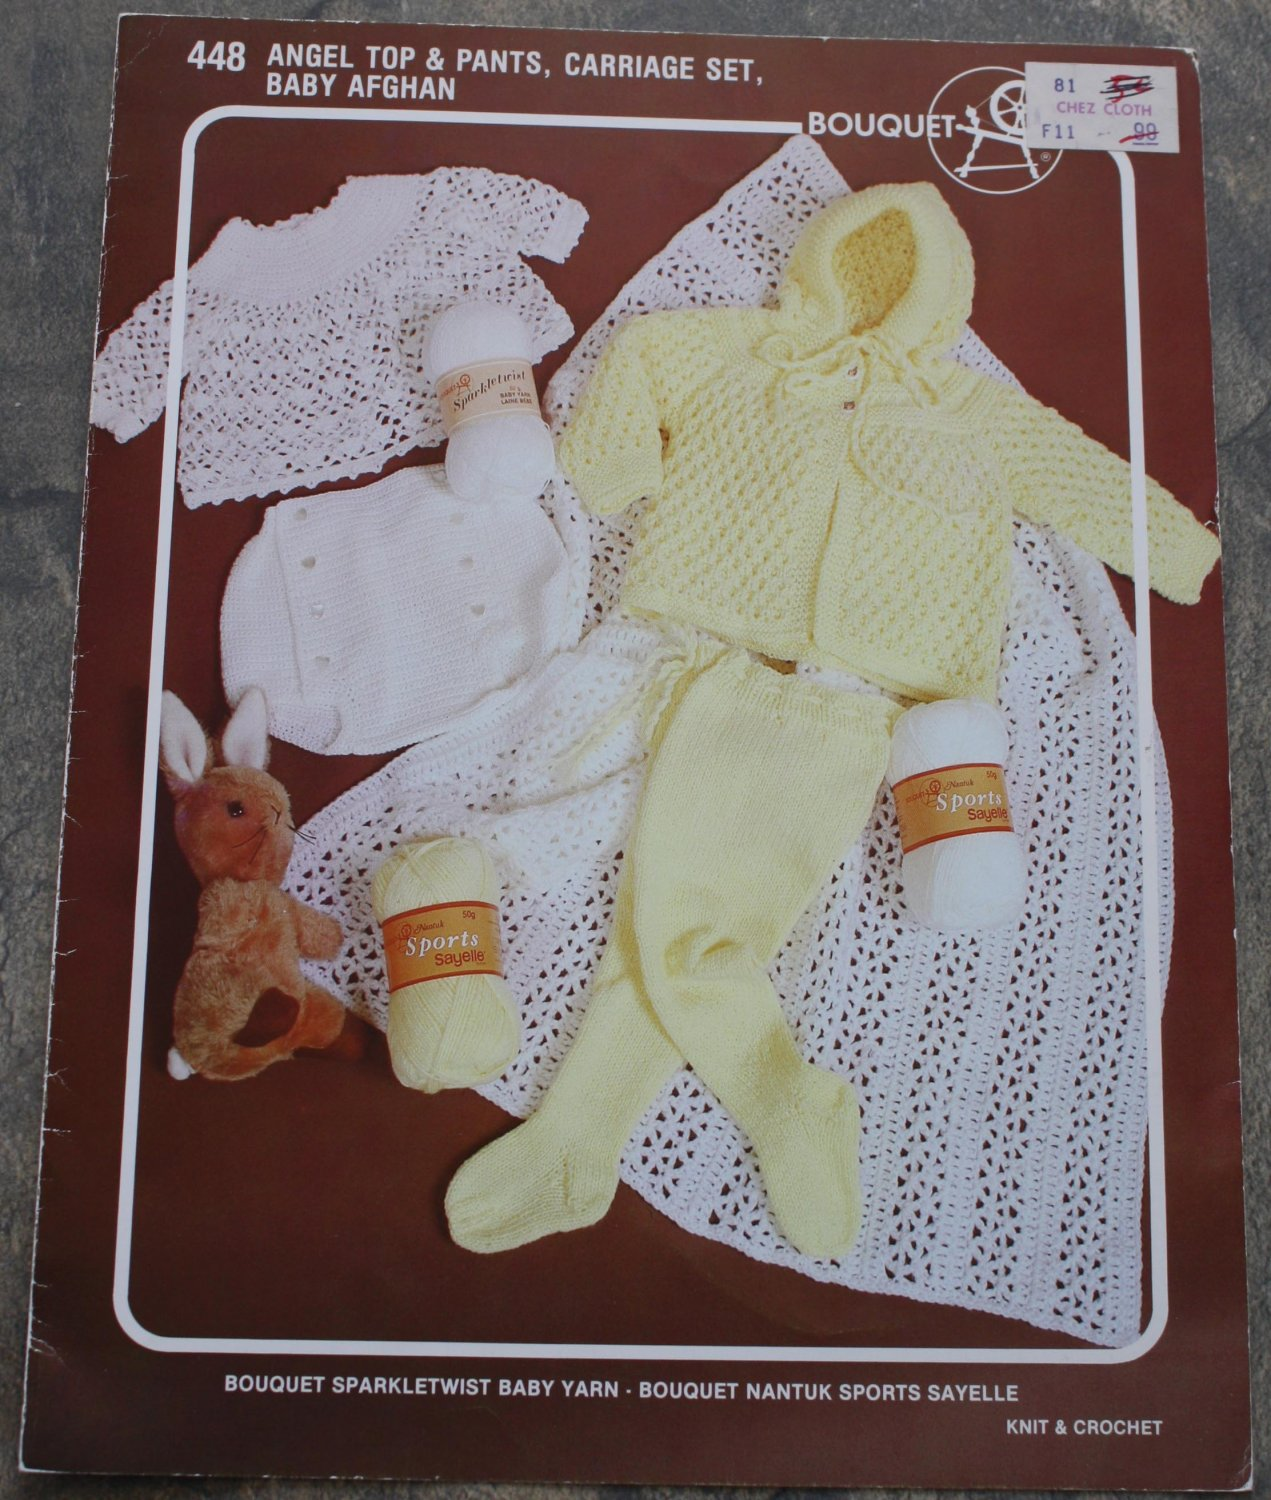 Bouquet Knit & Crochet Pattern No. 448 Angel Top & Pants Carriage Set Baby Afghan